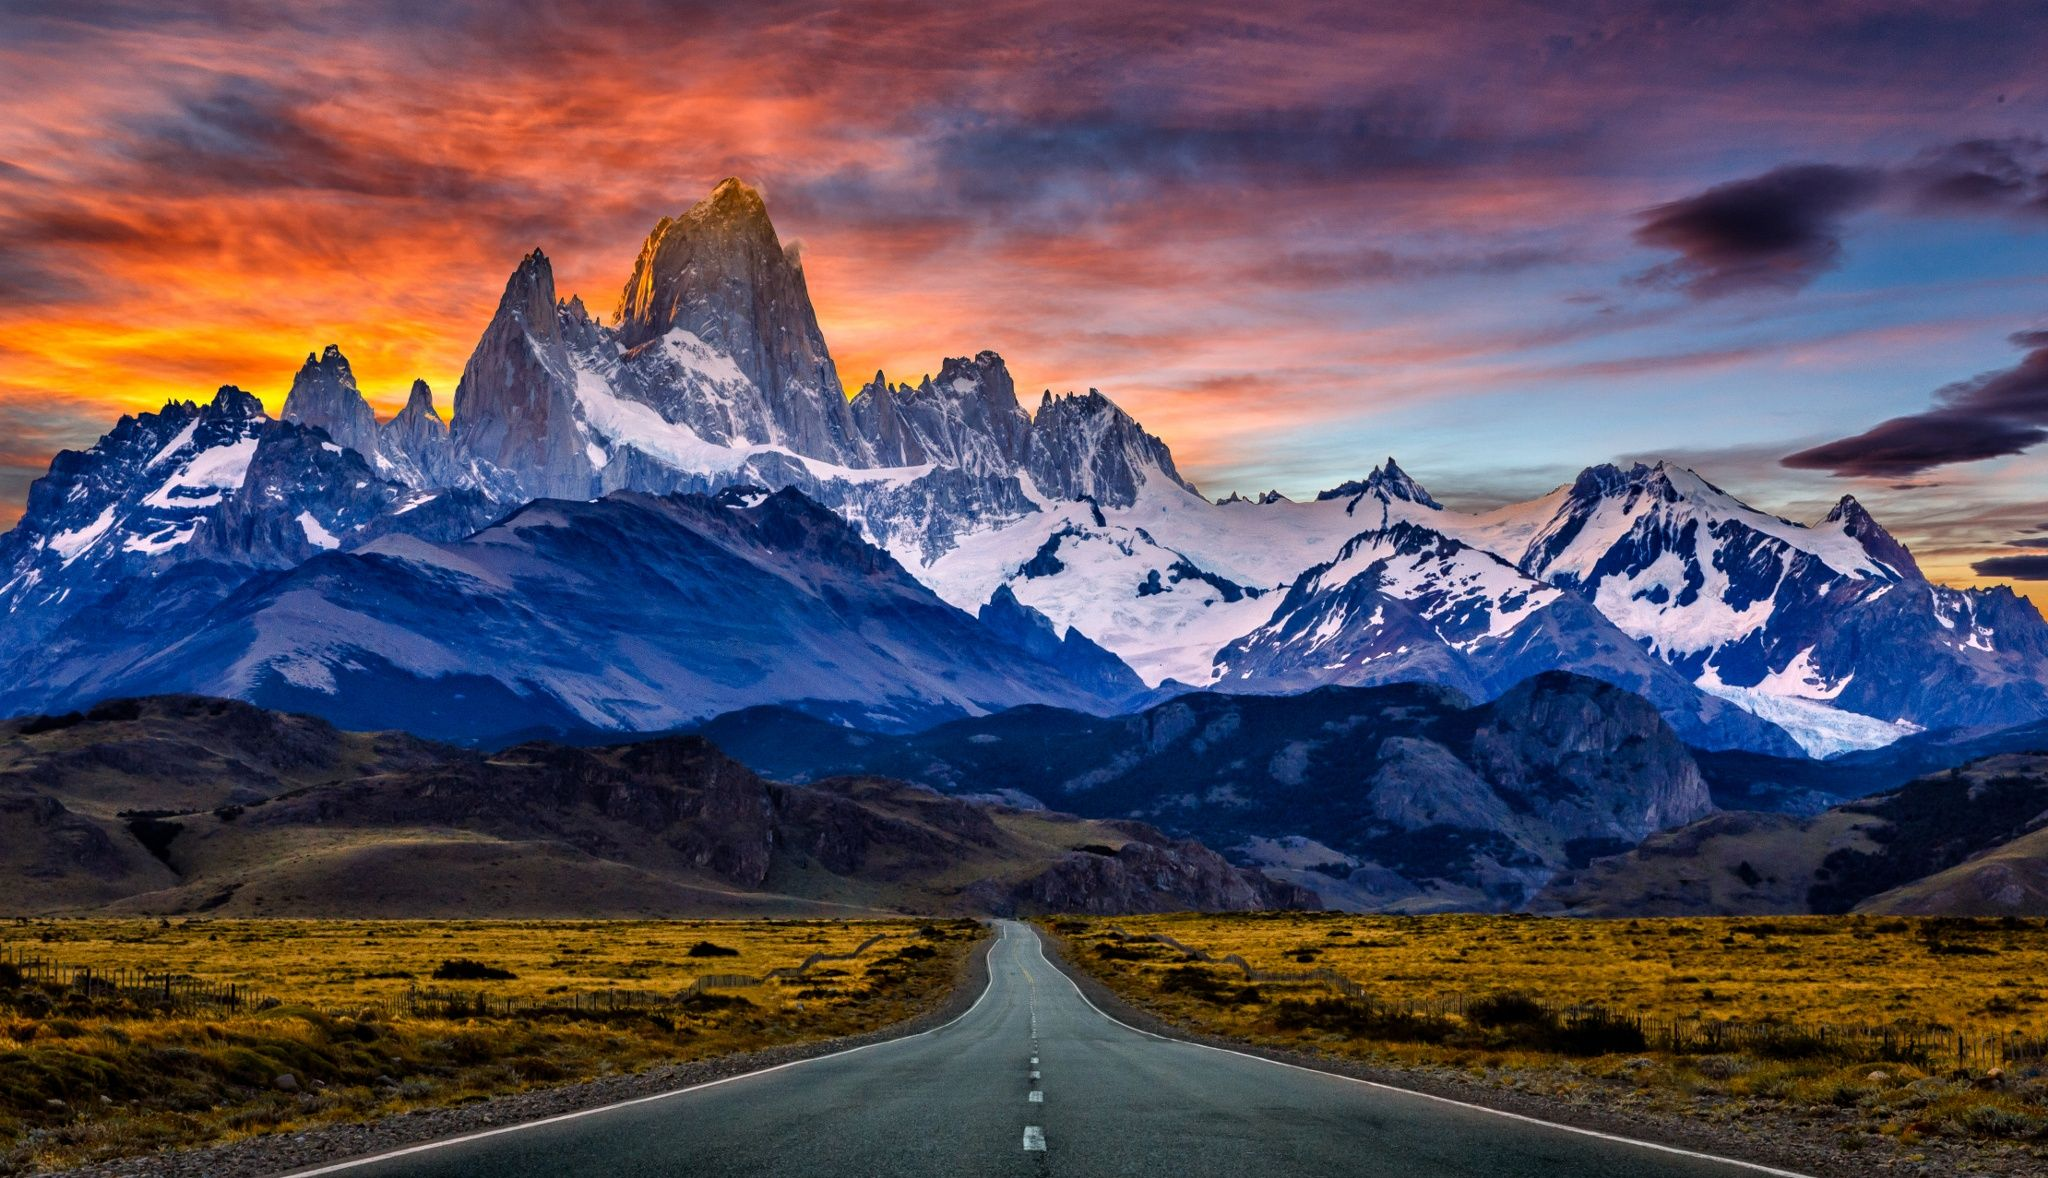 Towards Mount Fitz Roy in the sunset by Kenneth Back on 500px